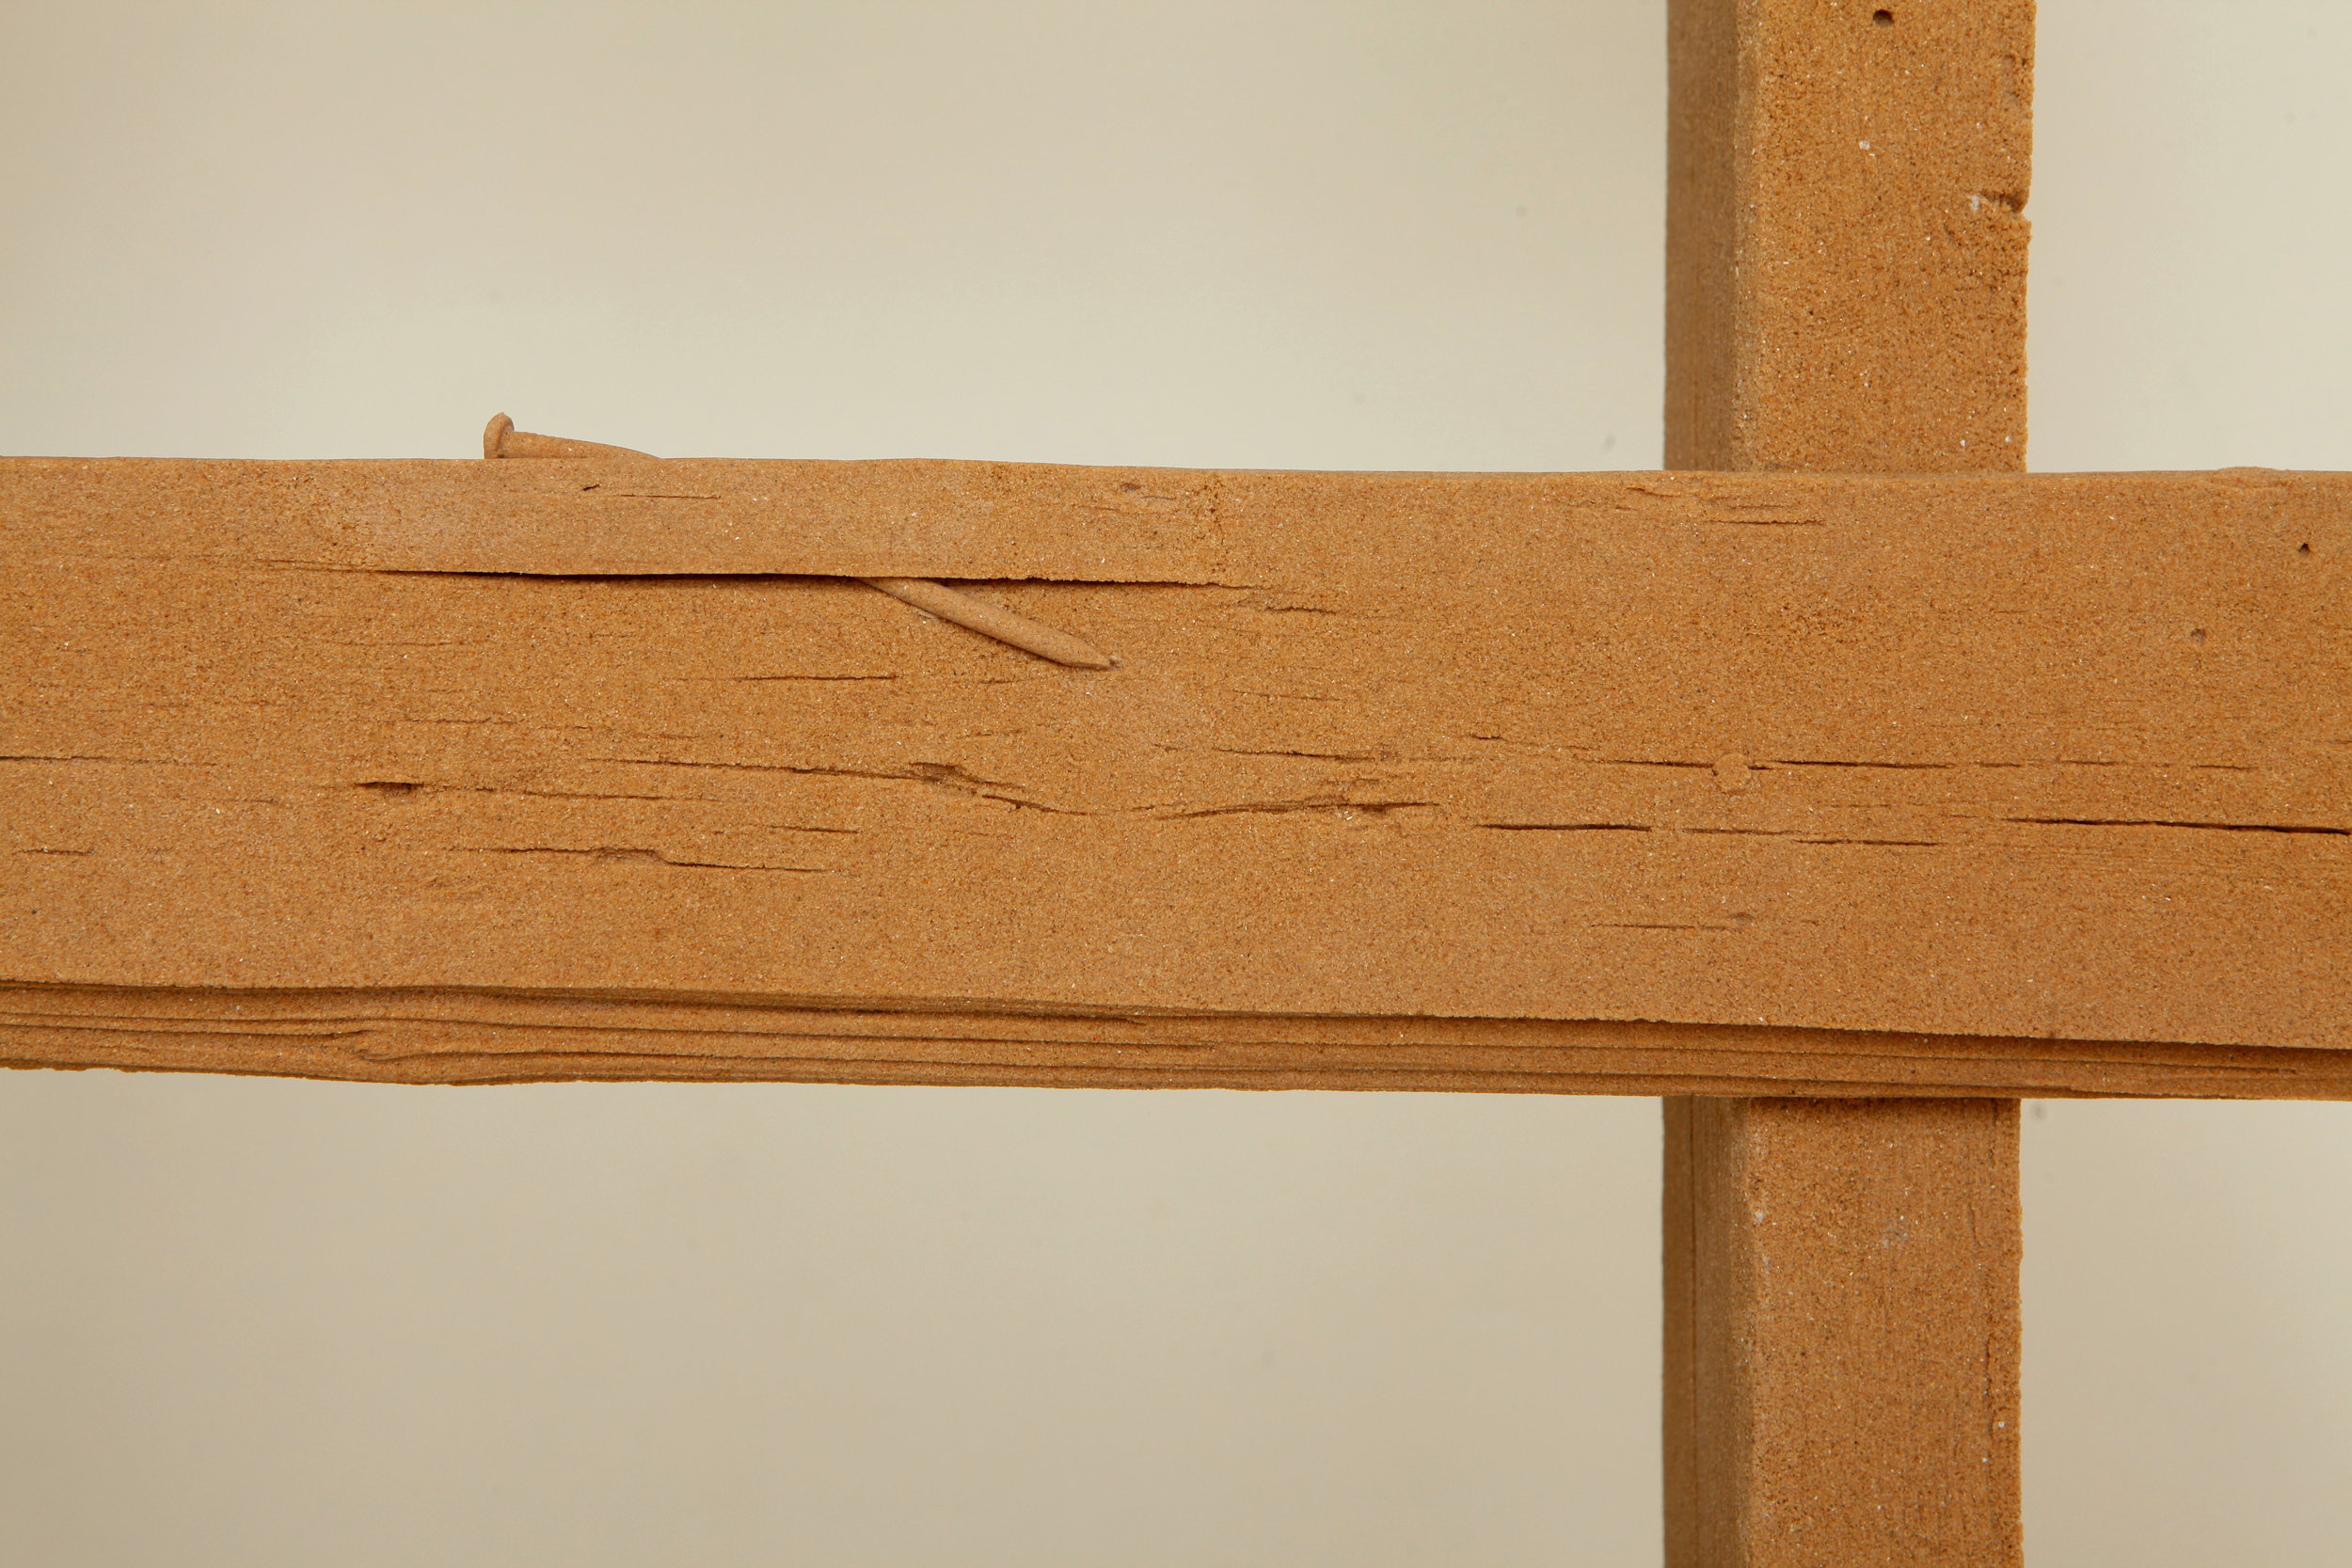 The Ladder (detail) by Haimi Fenichel, cast sand. Photo by Yuval Hai, 2010, courtesy of the artist.